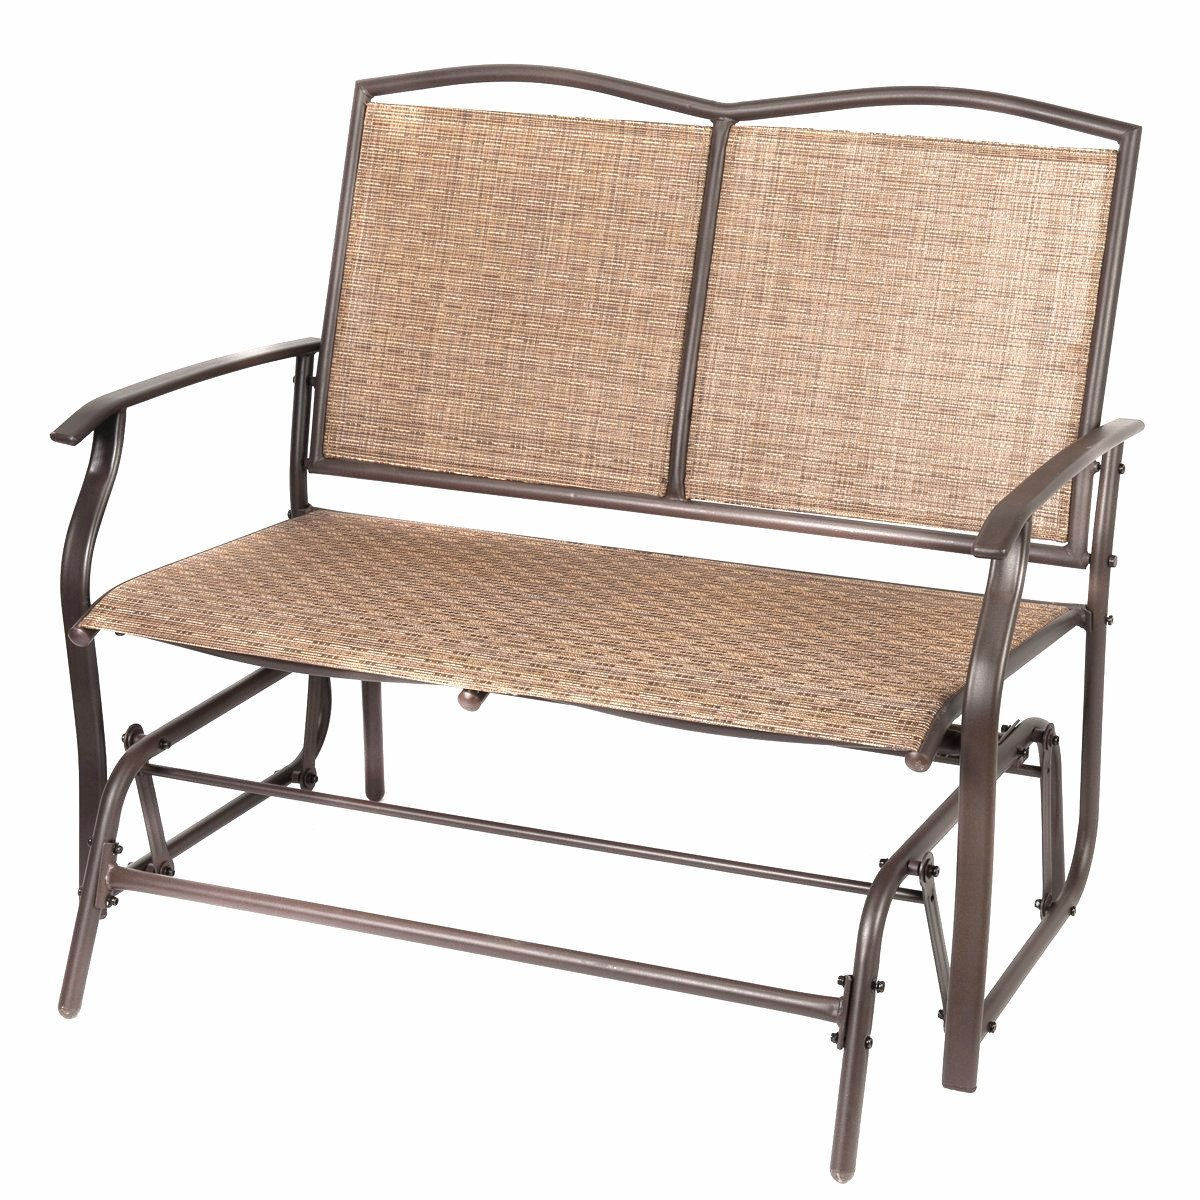 Amazon.com : Naturefun Patio Swing Glider Bench Chair, Garden Glider  Rocking Loveseat Chair, All Weatherproof, Brown : Garden U0026 Outdoor